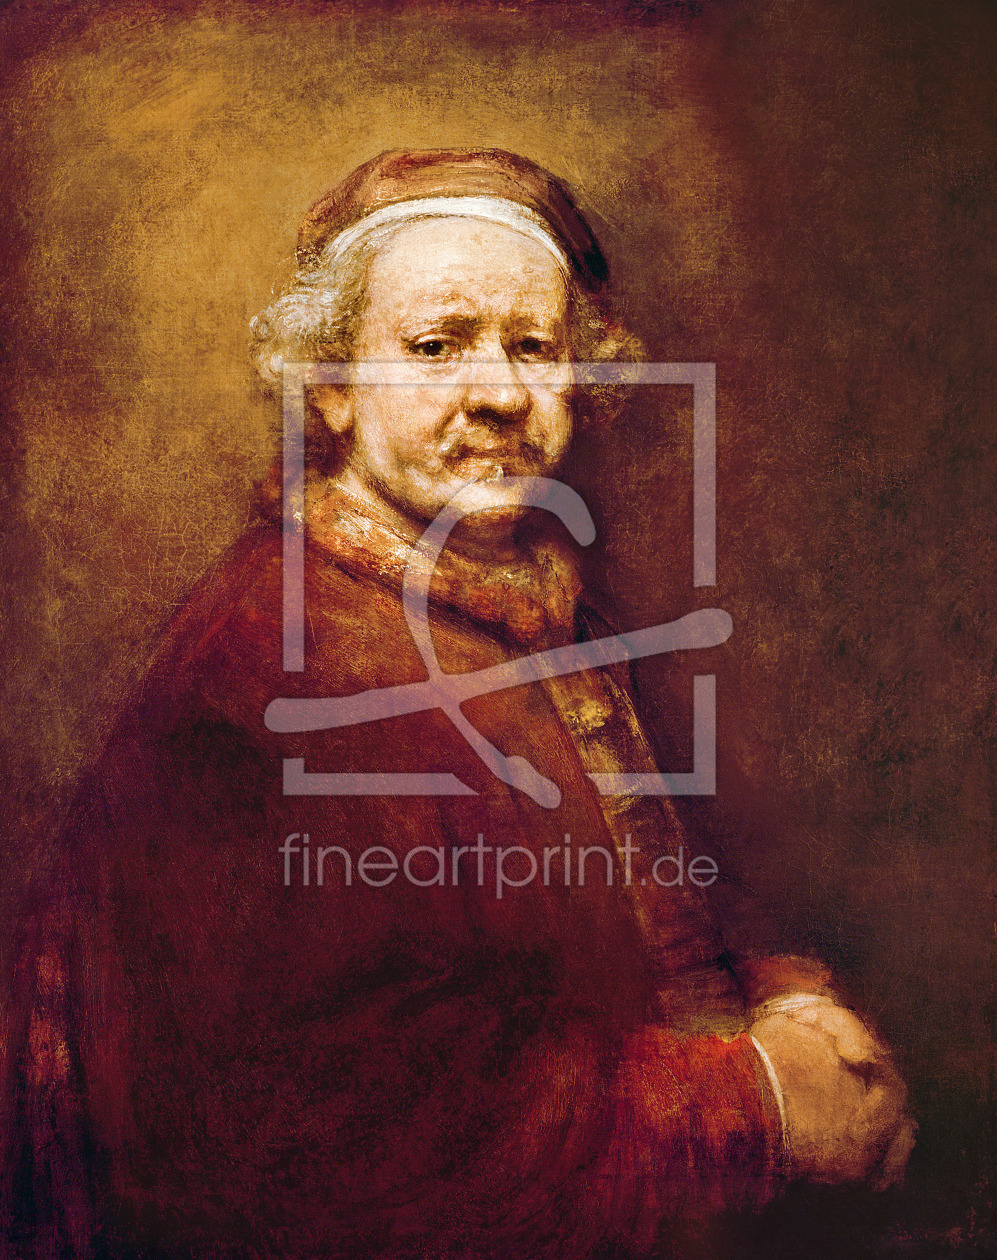 Bild-Nr.: 31001067 Self Portrait in at the Age of 63, 1669 erstellt von Rembrandt Harmenszoon van Rijn